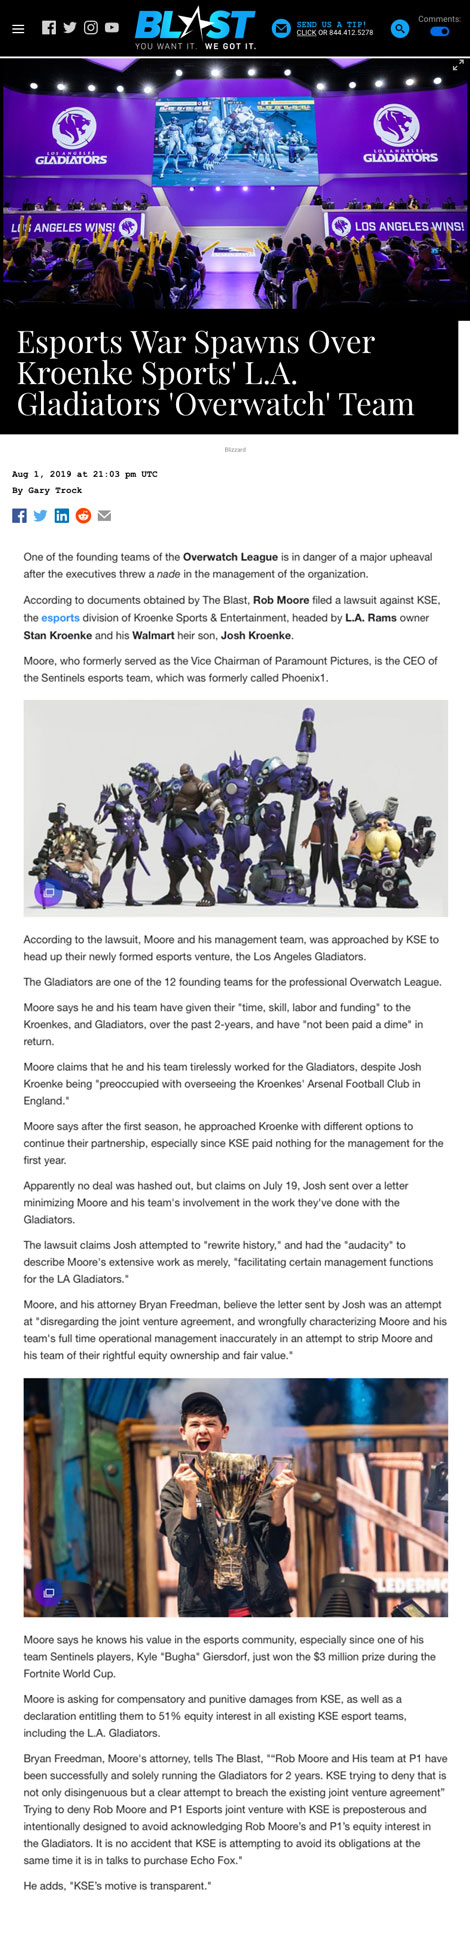 Esports War Spawns Over Kroenke Sports' L.A. Gladiators 'Overwatch' Team - article by TheBlast.com